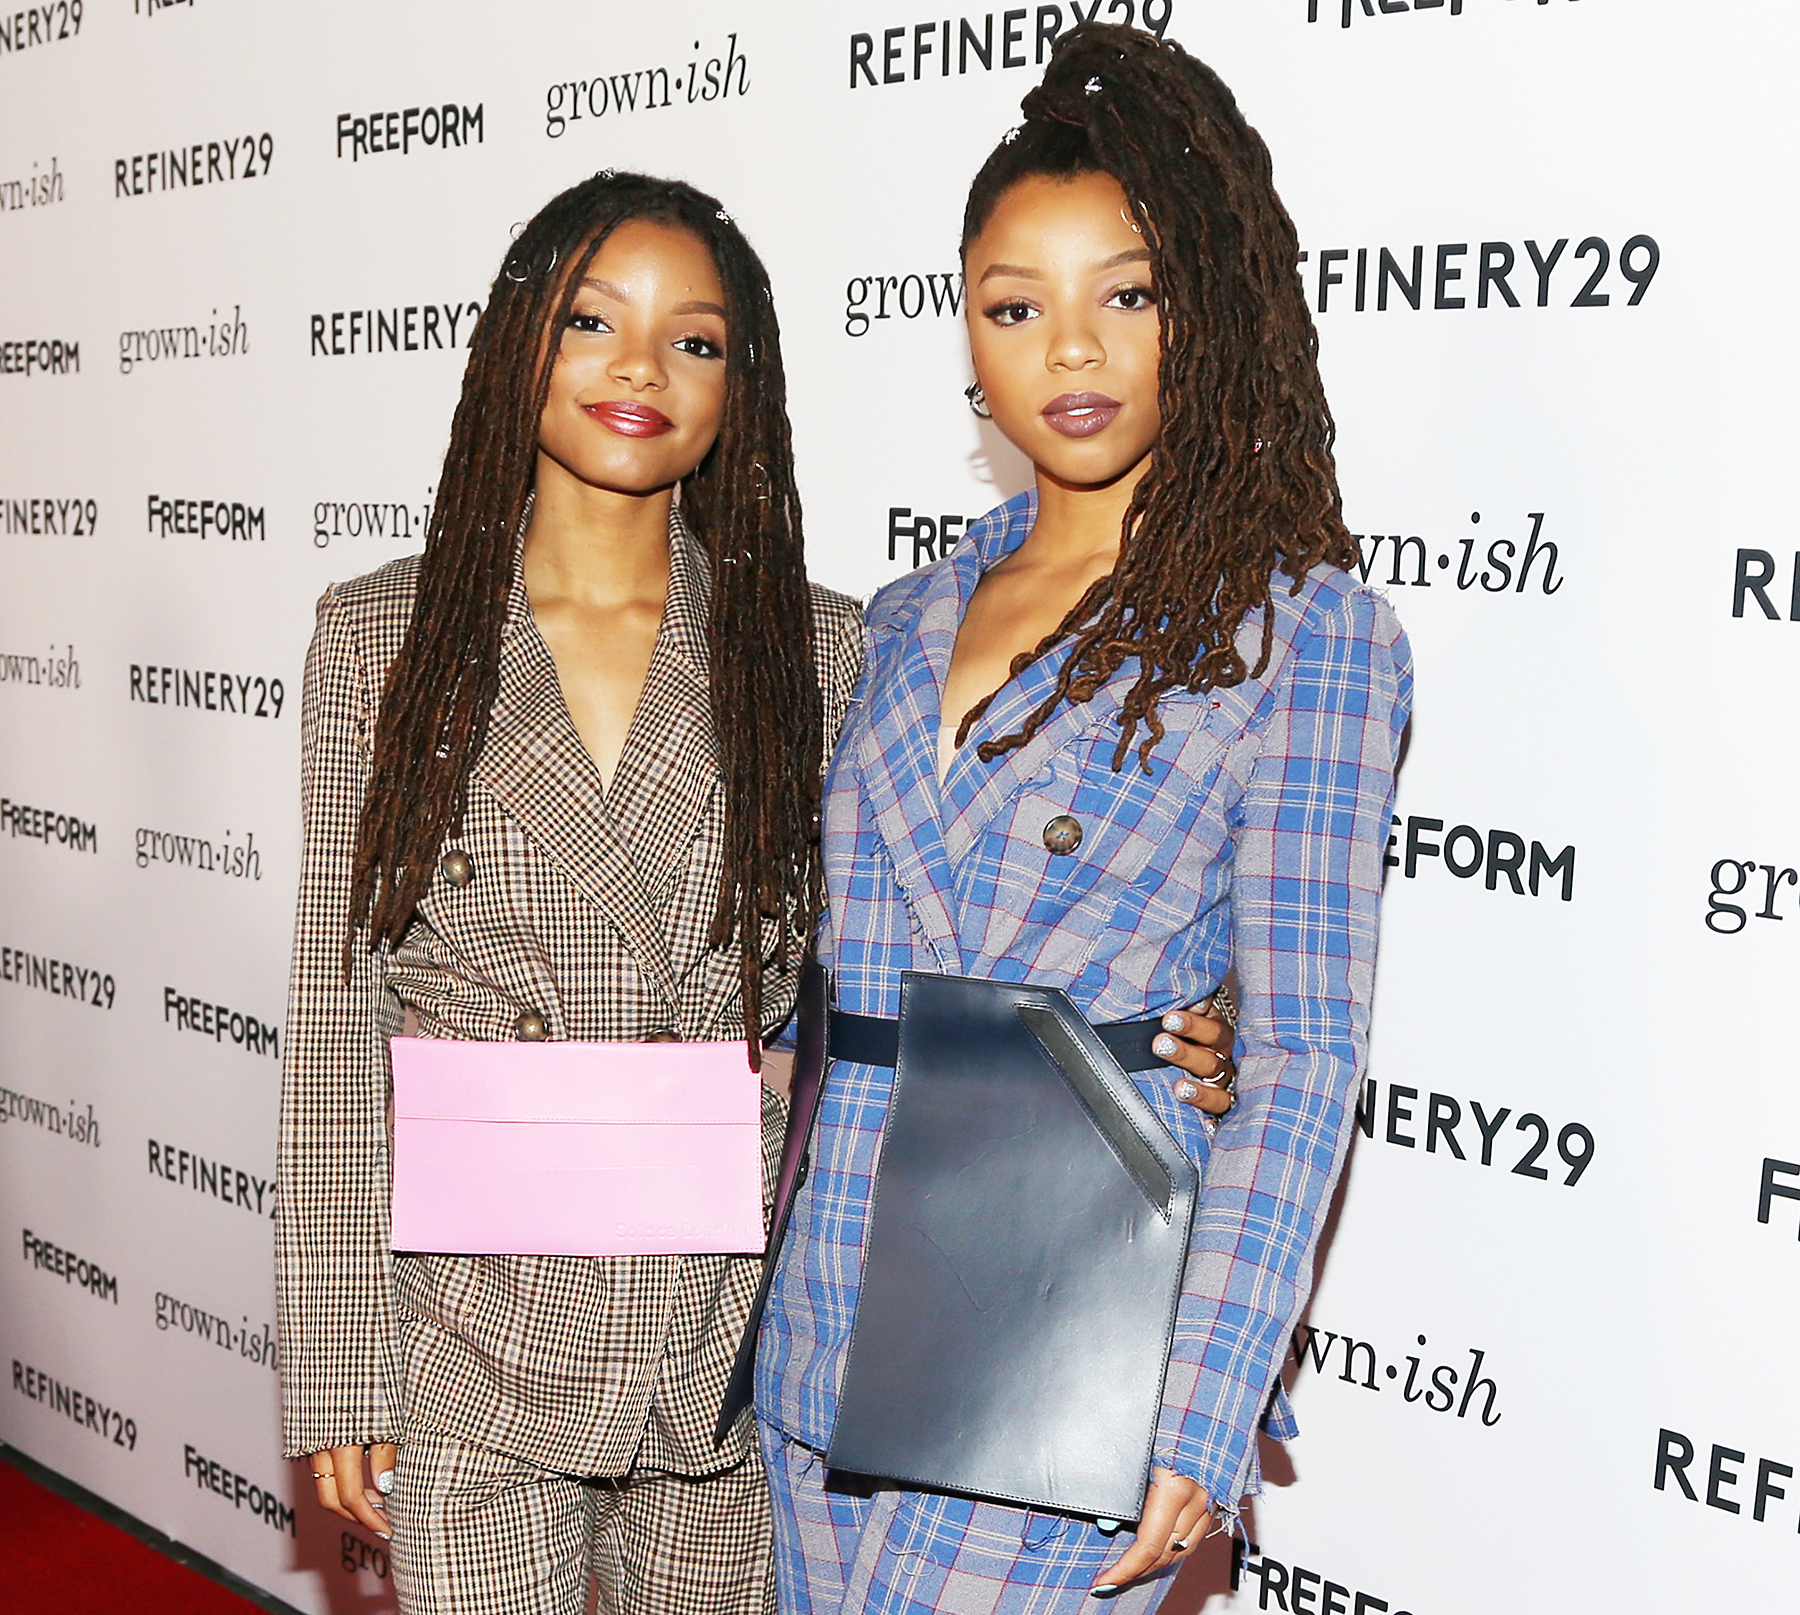 Halle Bailey and Chloe Bailey attend the premiere of Grown-ish